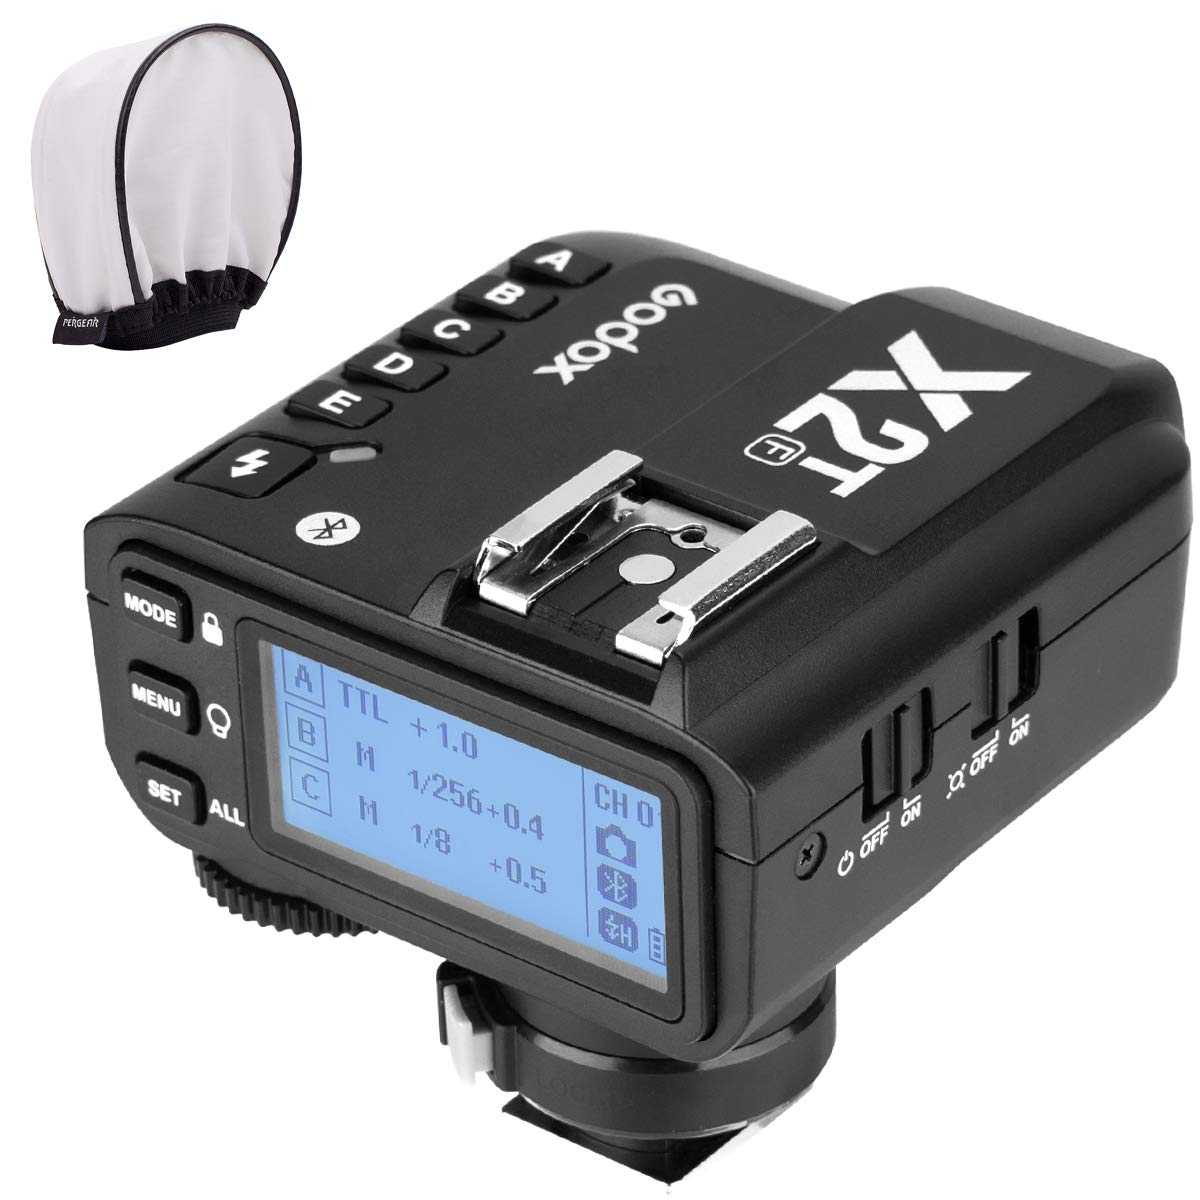 Godox X2T-F TTL Wireless Flash Trigger for Fujifilm Fuji, Bluetooth Connection, 1/8000s HSS, TCM Function, 5 Separate Group Buttons, Relocated Control-Wheel, New Hotshoe Locking, New AF Assist Light